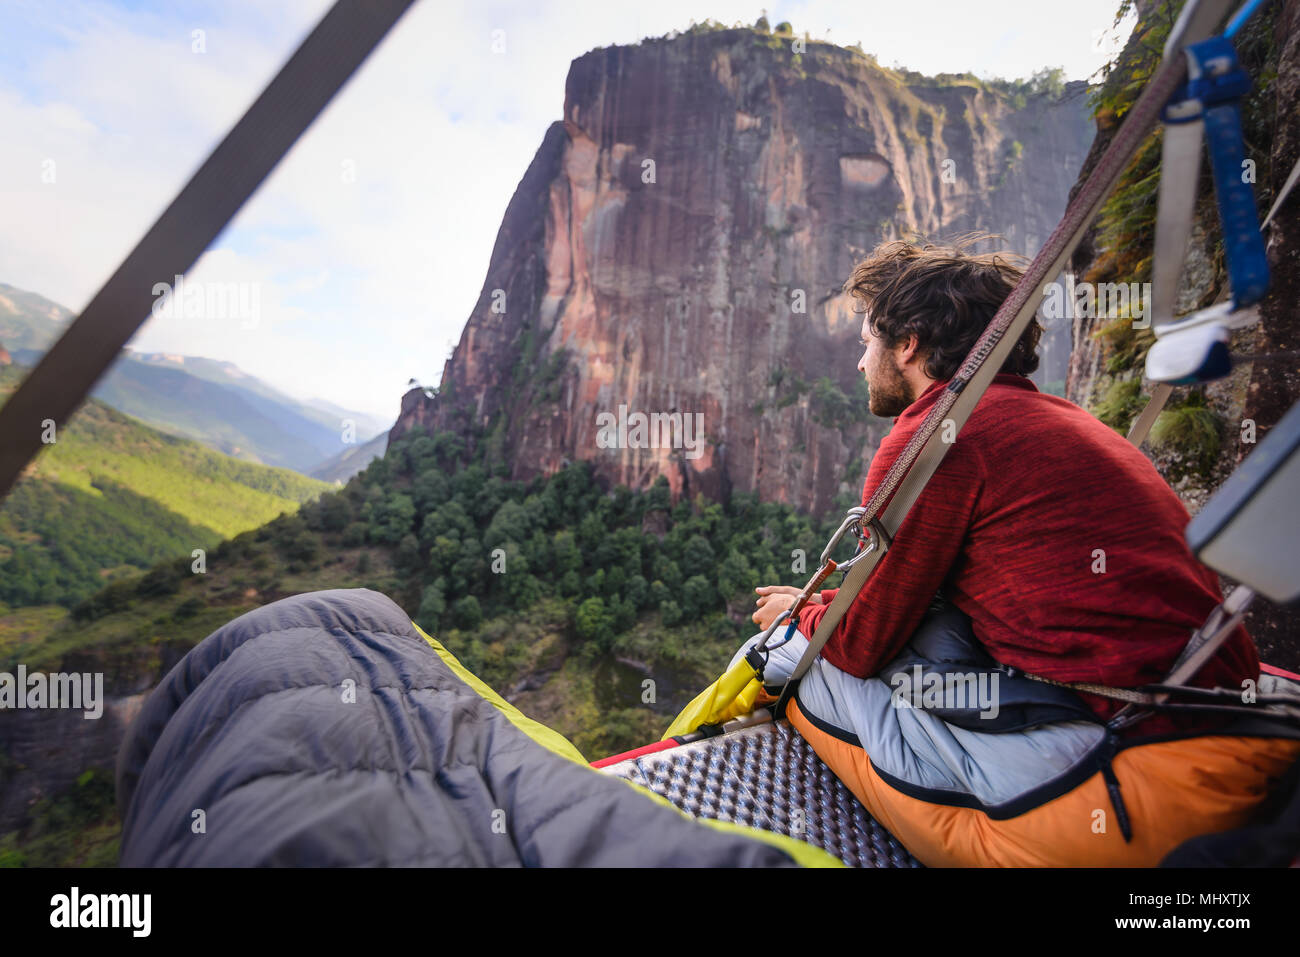 Rock climber on portaledge, looking at view, Liming, Yunnan Province, China - Stock Image